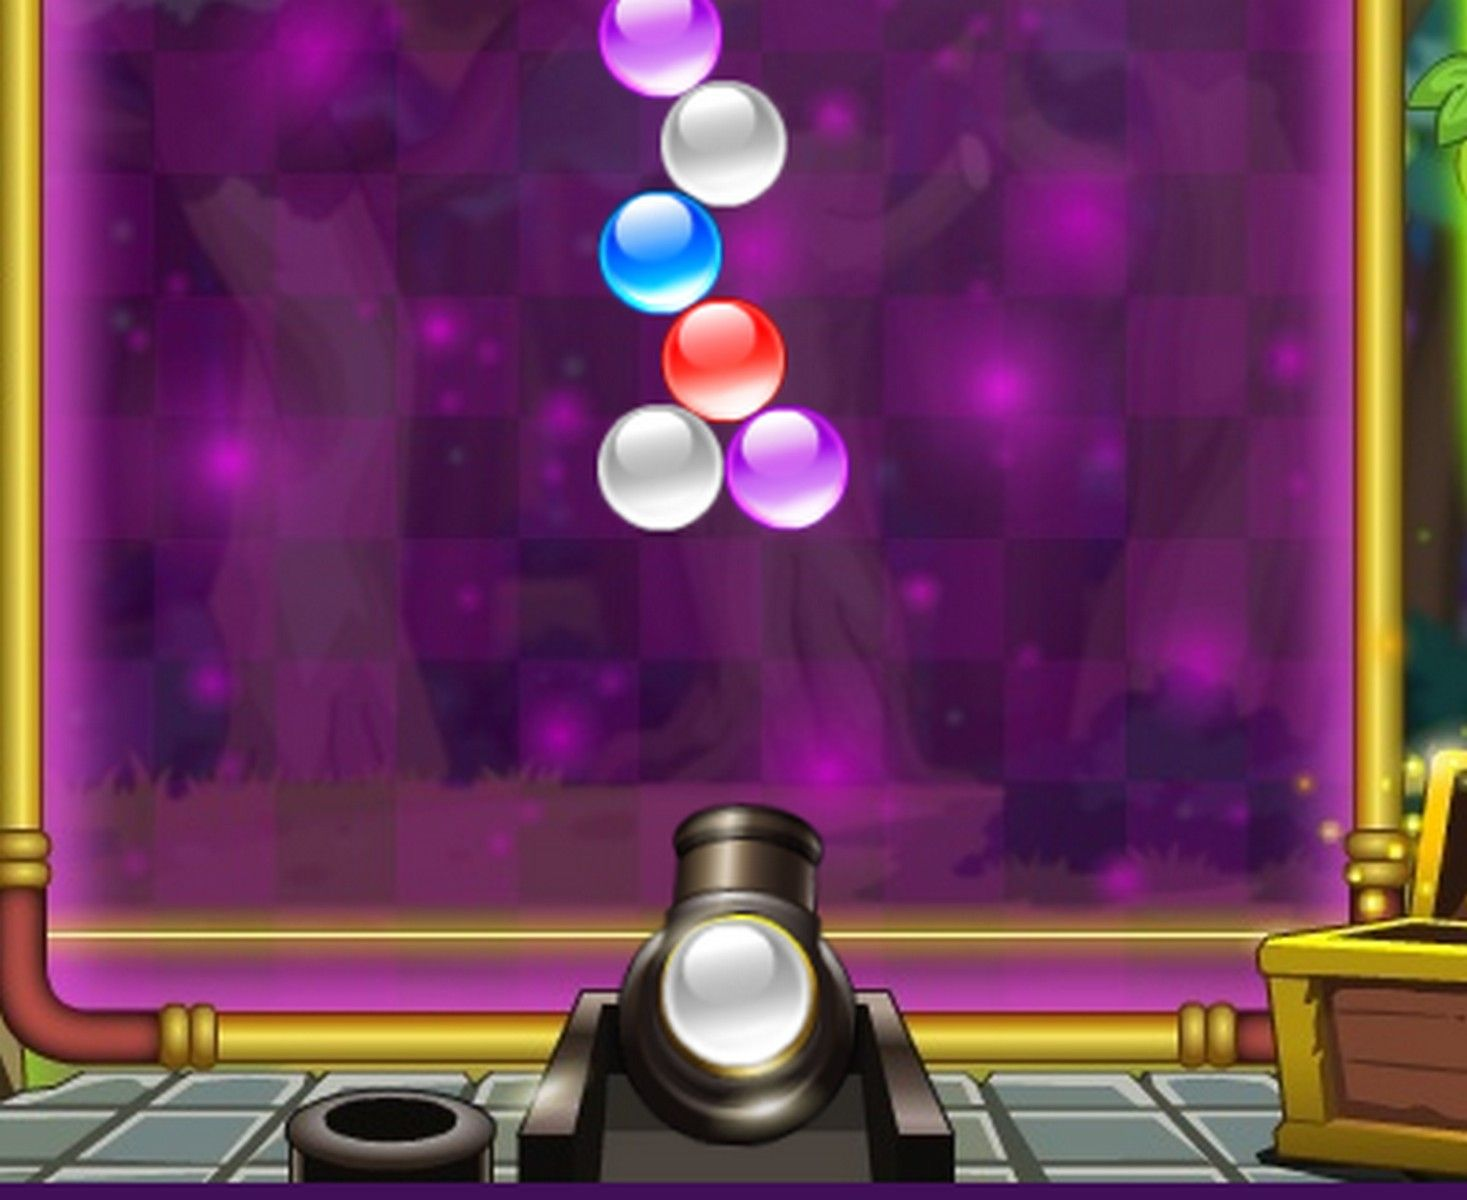 Bubble Shooter Puzzle game shoot bubbles up and create 3